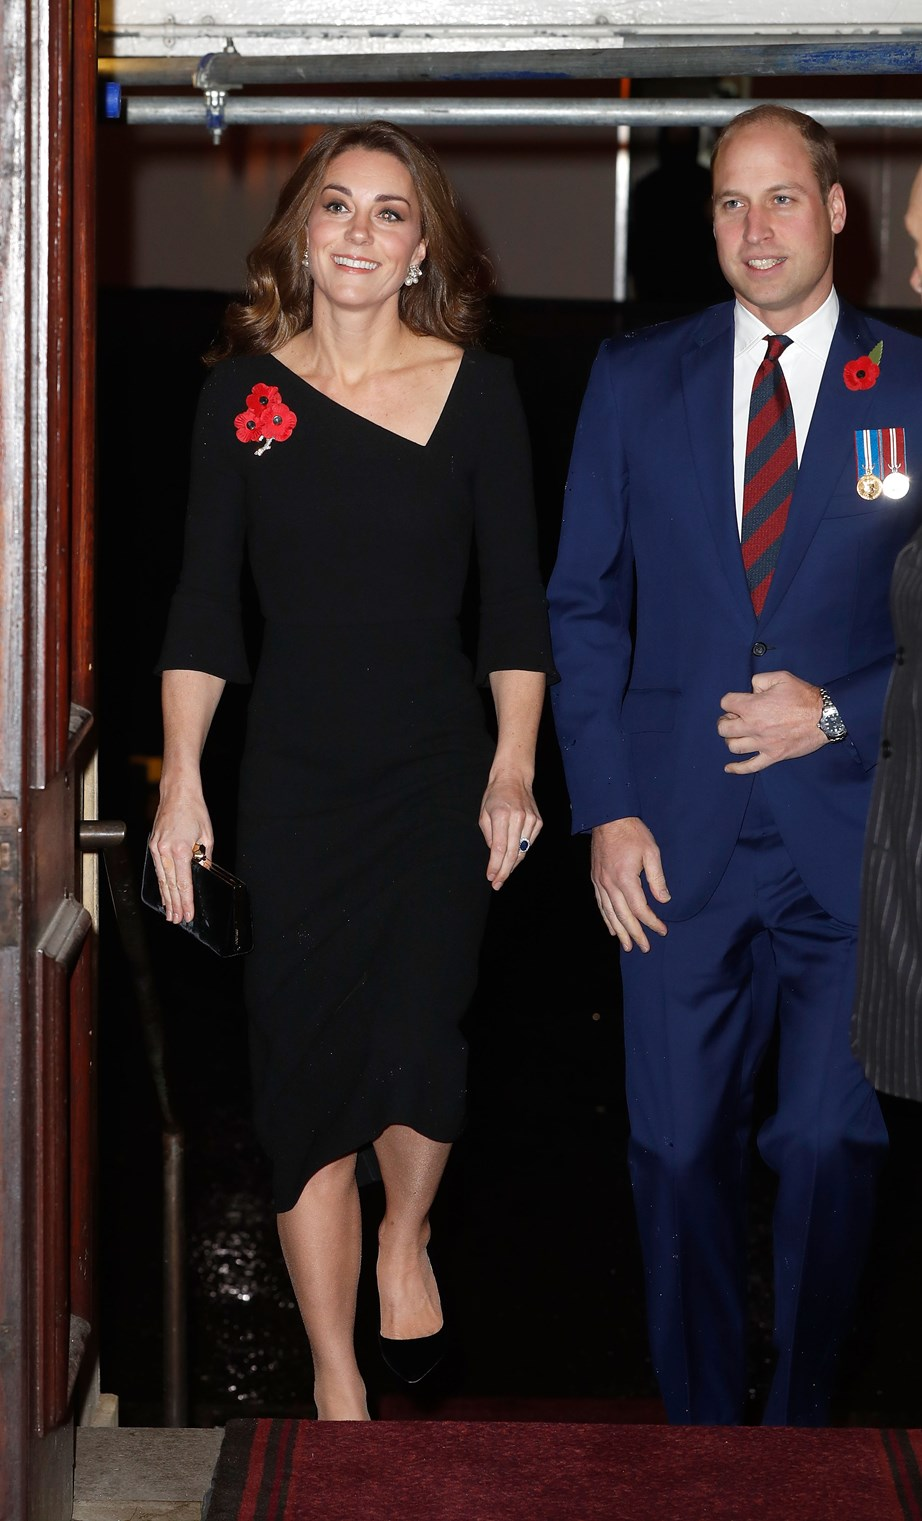 Wills and Kate were all smiles!